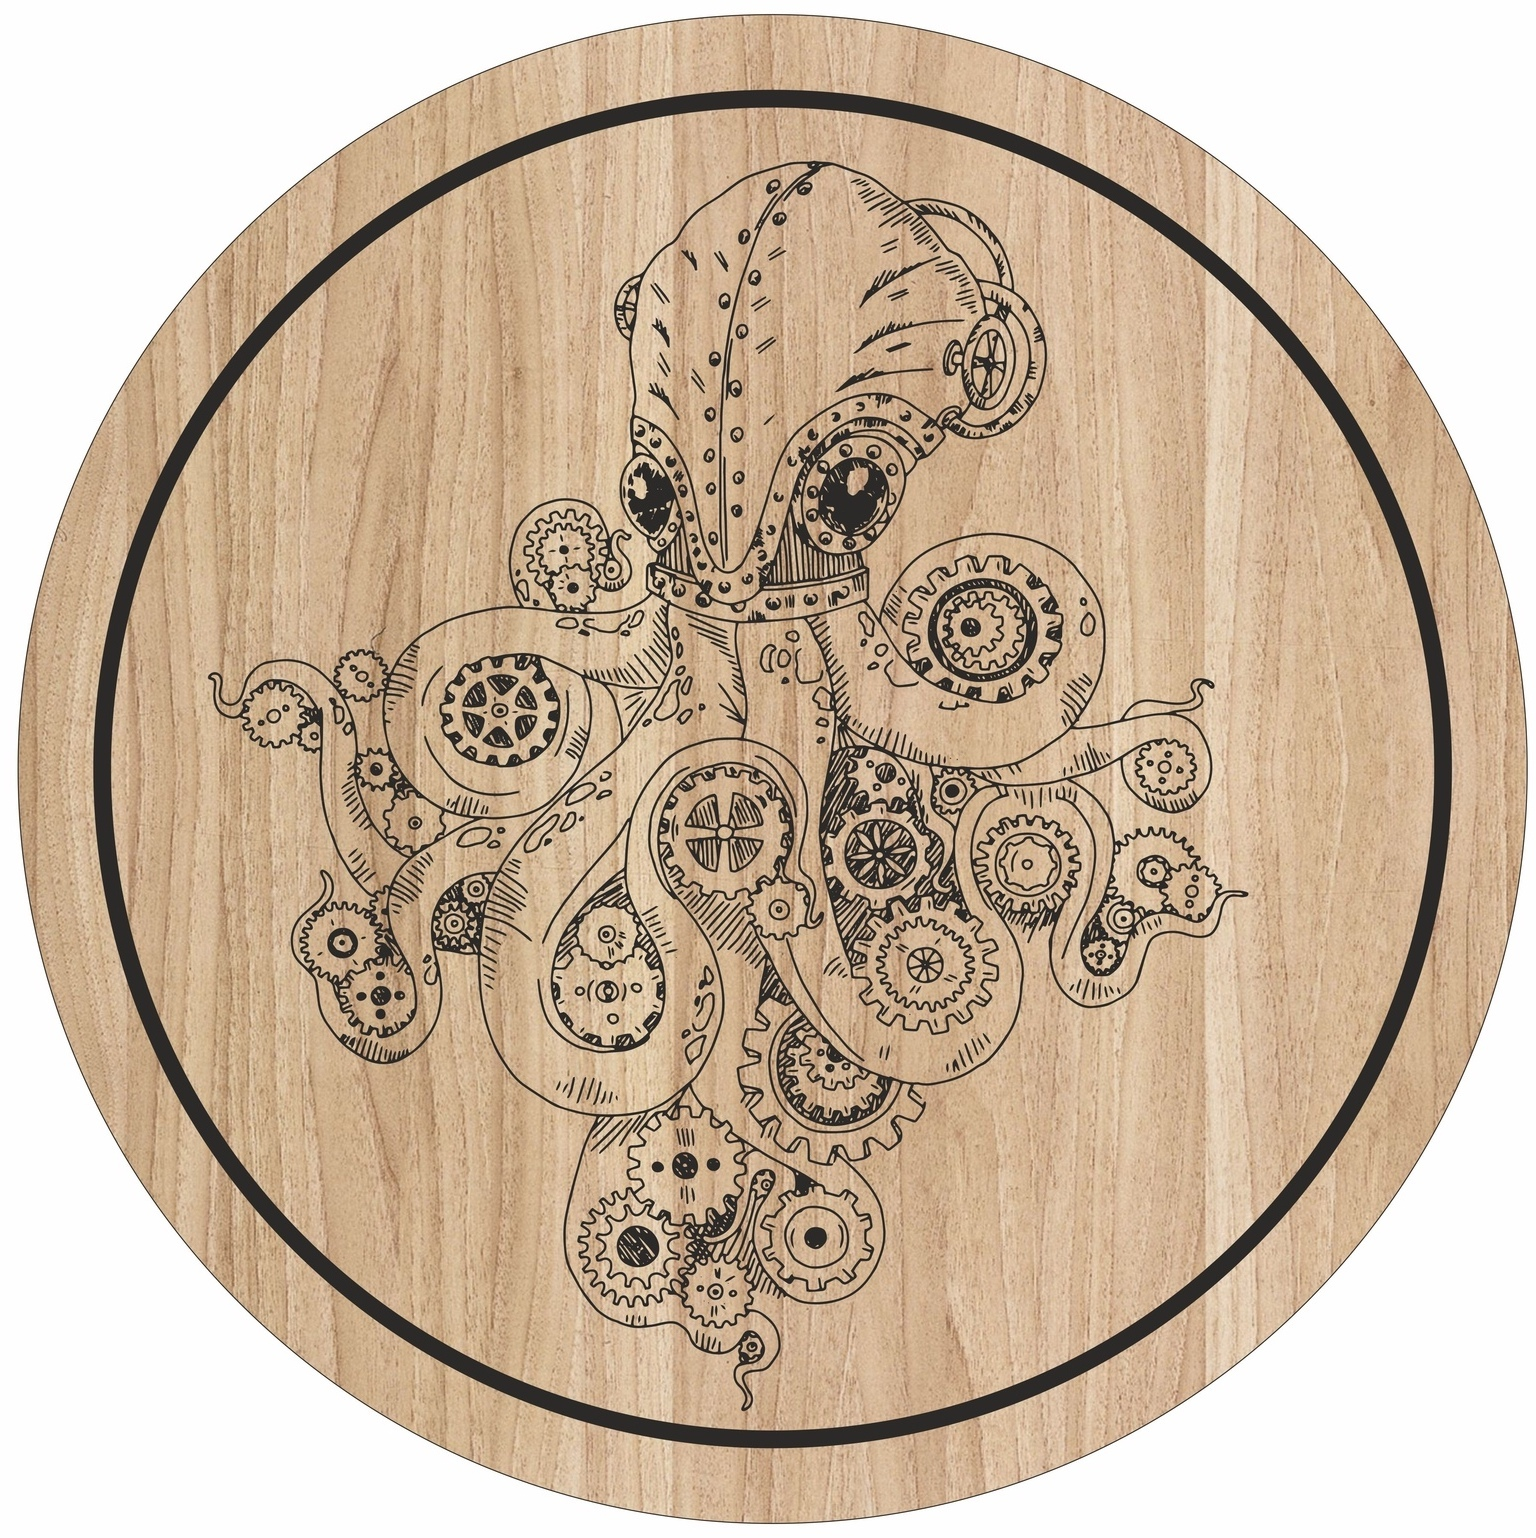 Laser Engraving Octopus Art For Cutting Board Free CDR Vectors Art